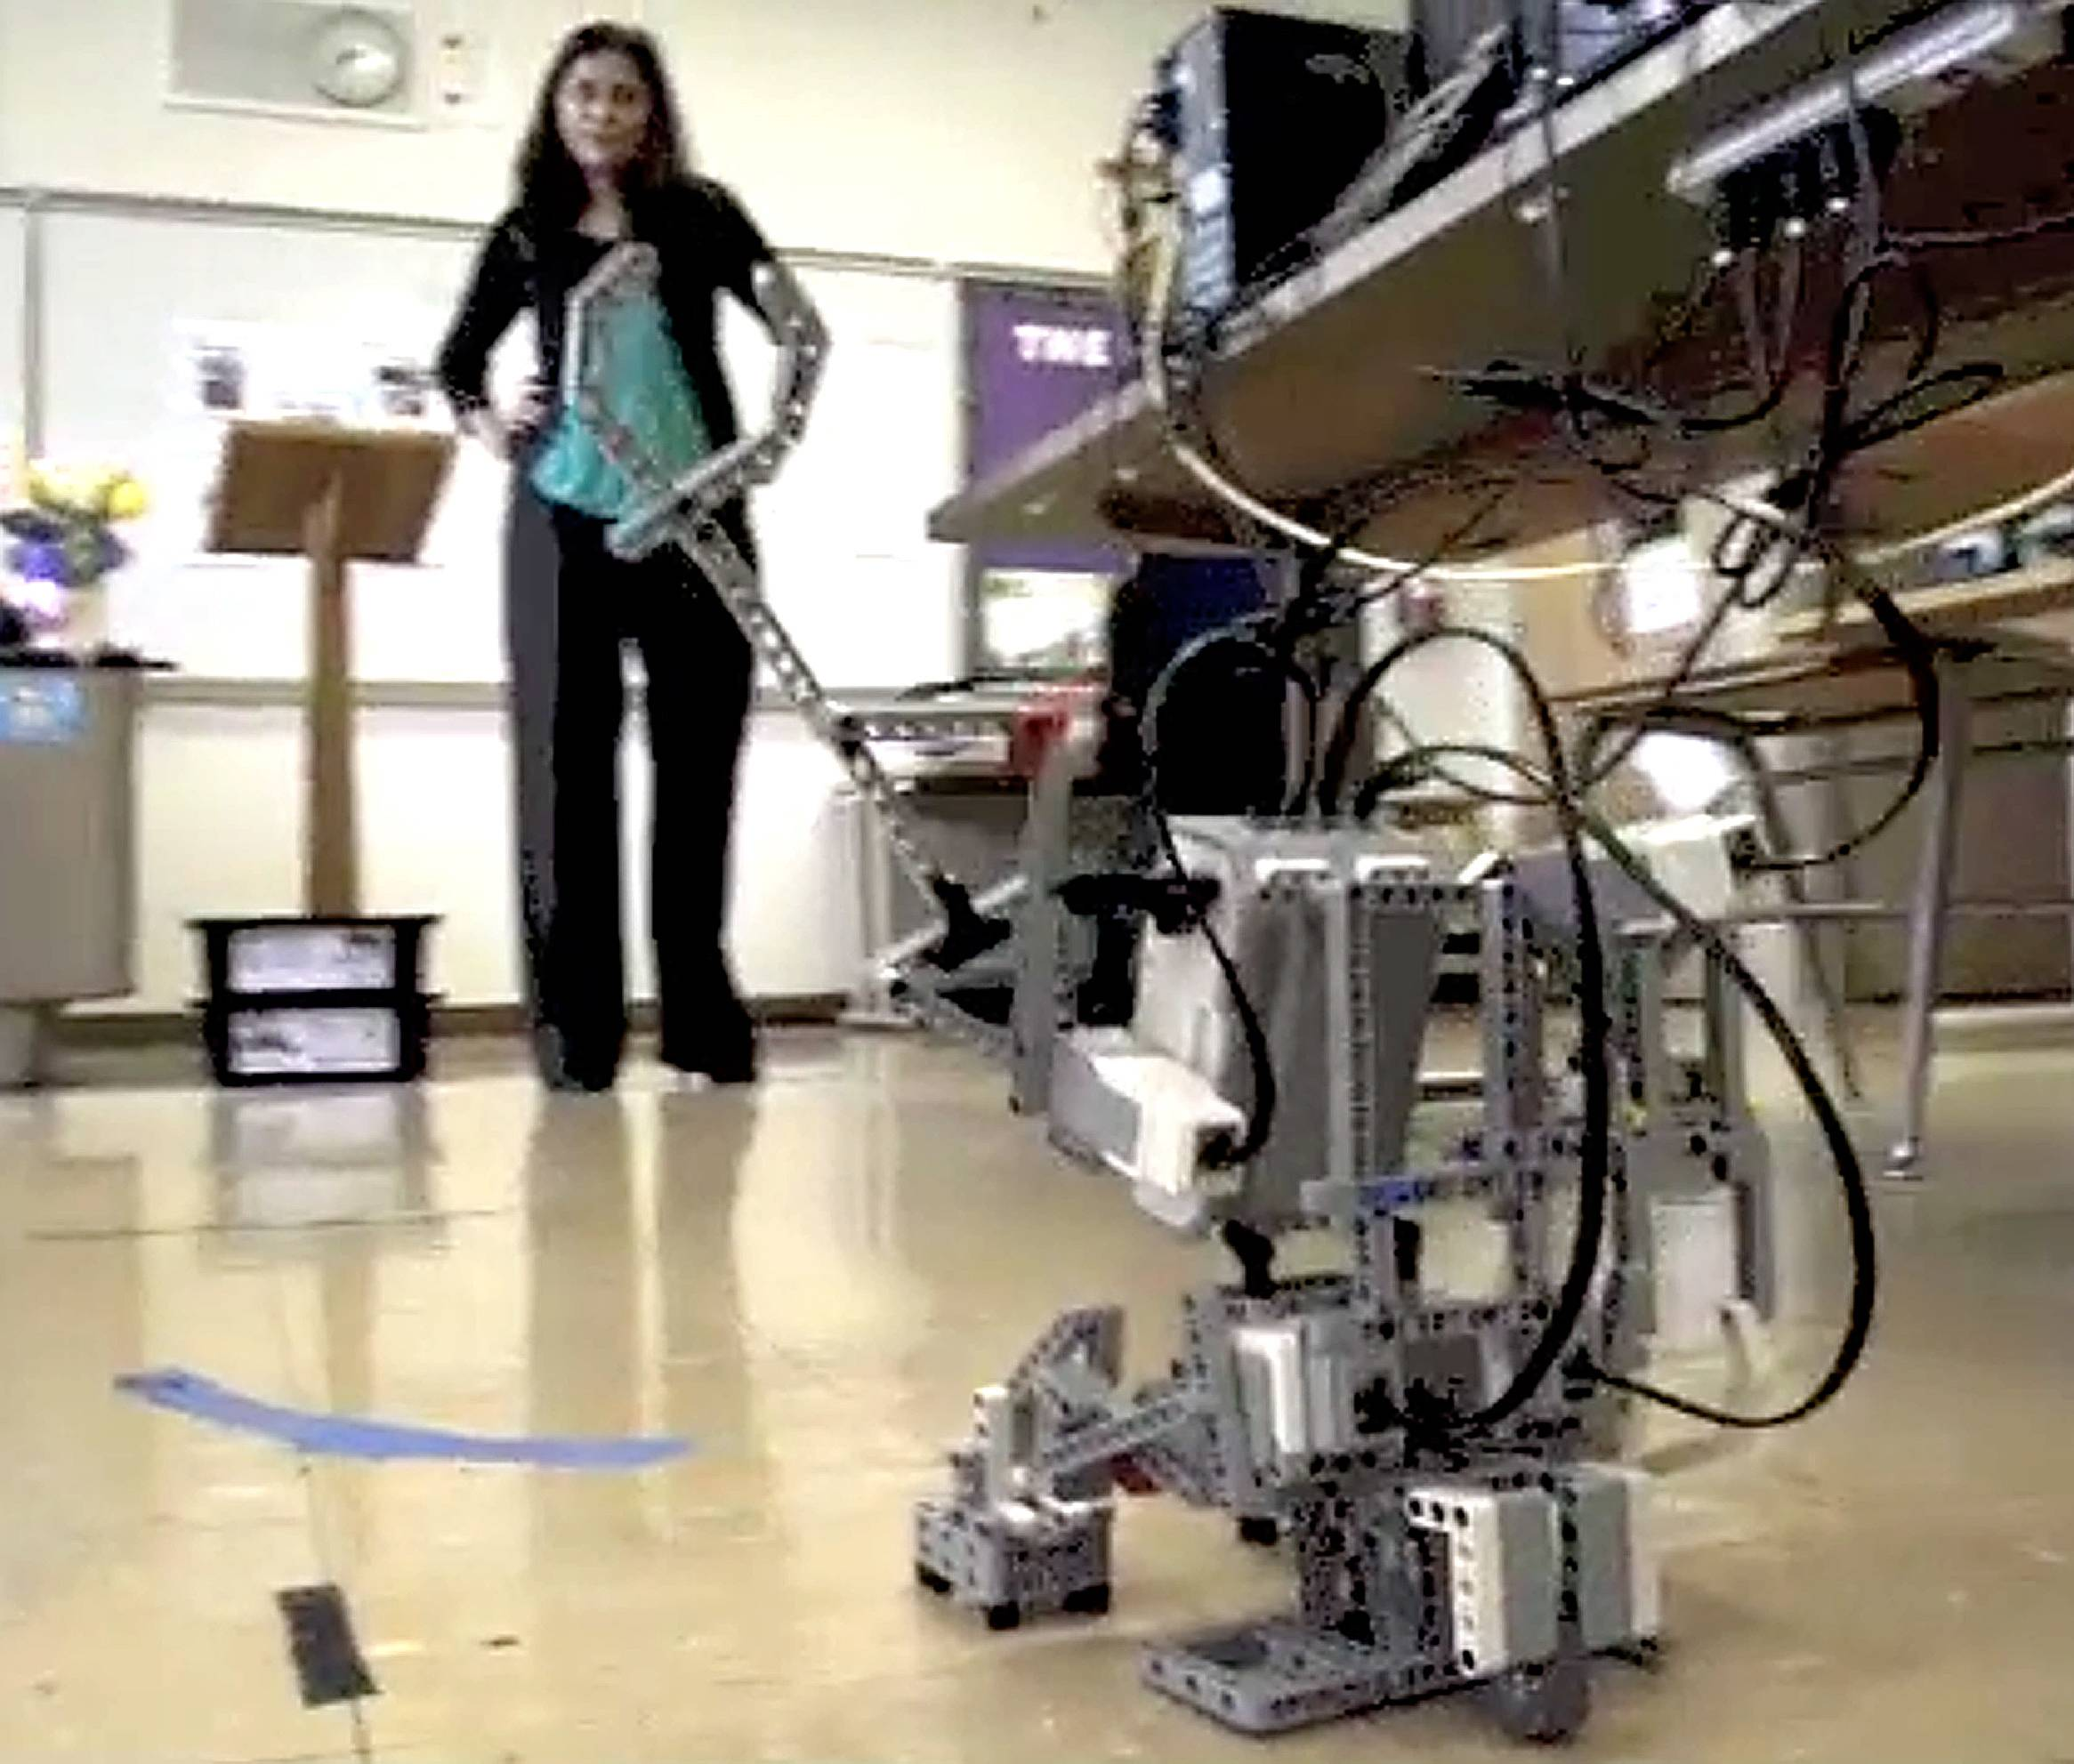 Falguni Soni is a chemistry and robotics teacher at Rosary High School in Aurora. She started the robotics class at the all-girls school.